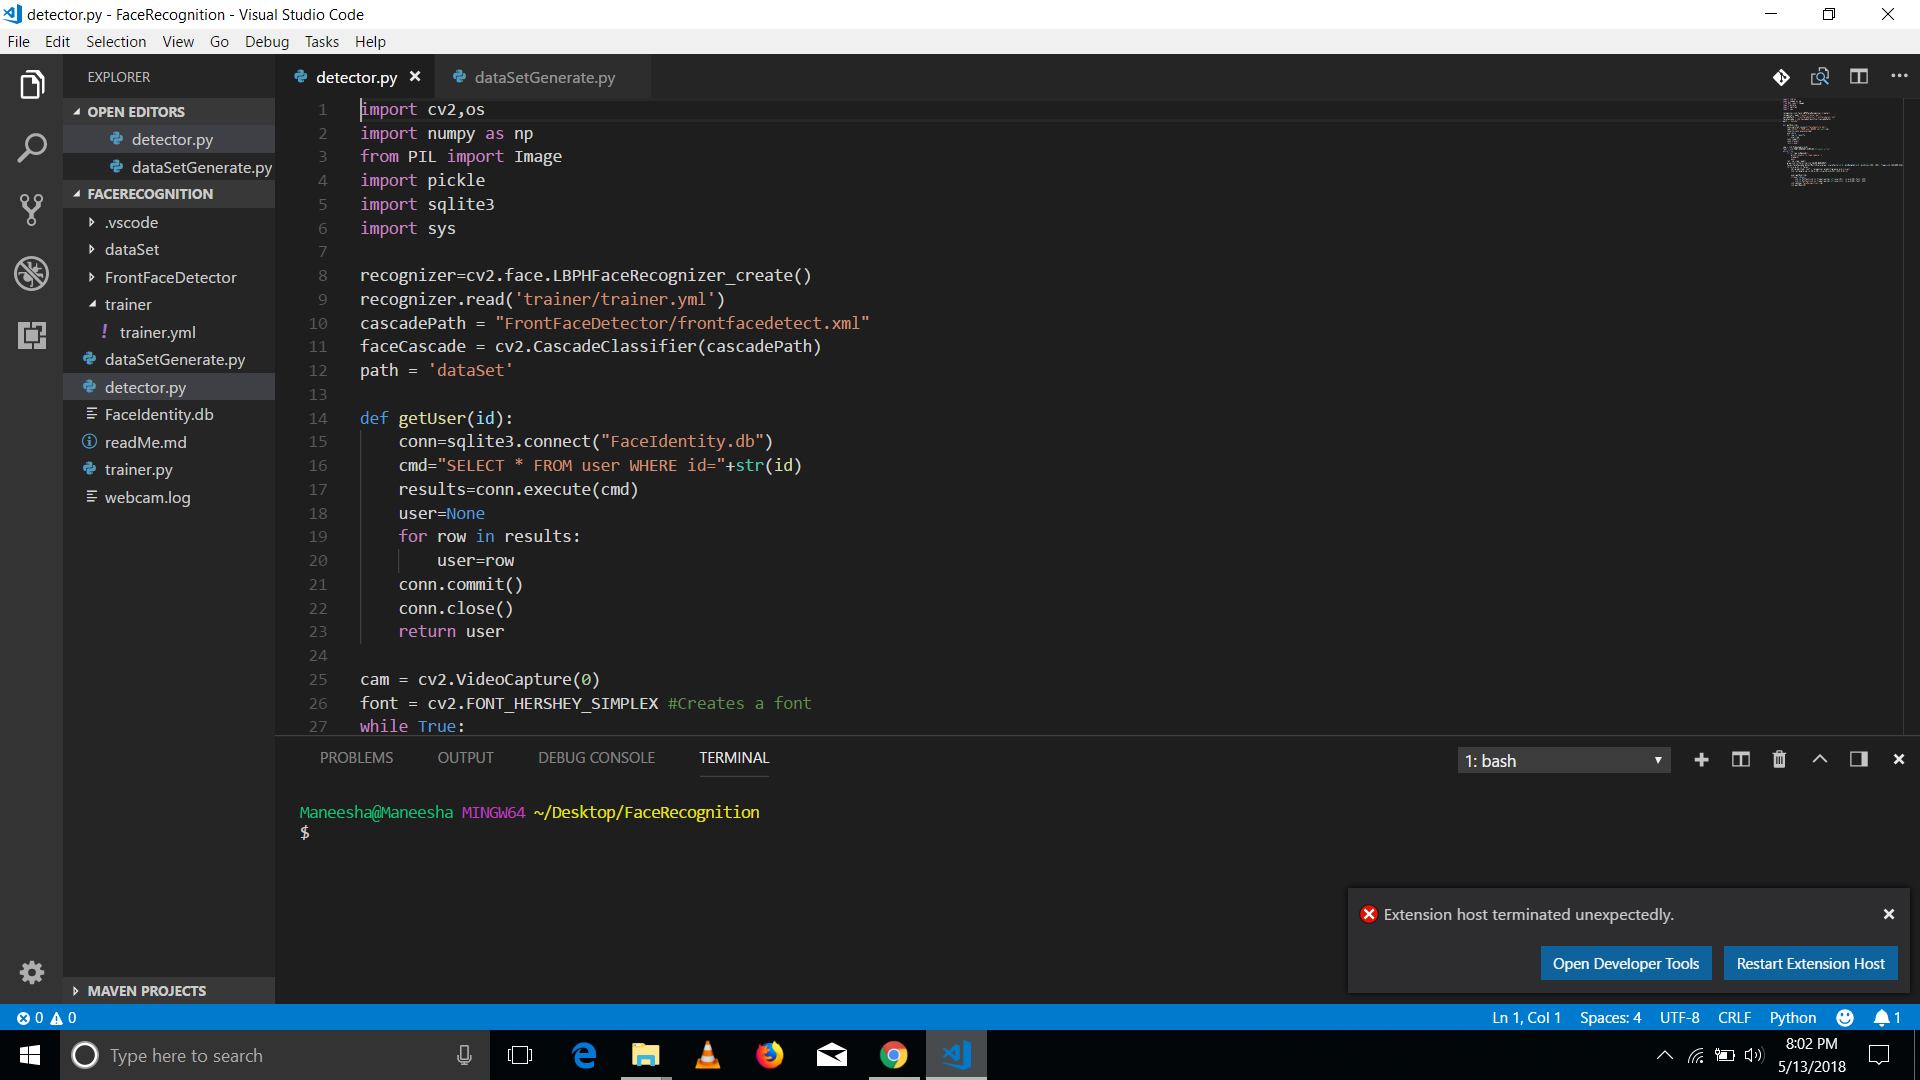 Extension Host Terminated · Issue #1681 · microsoft/vscode